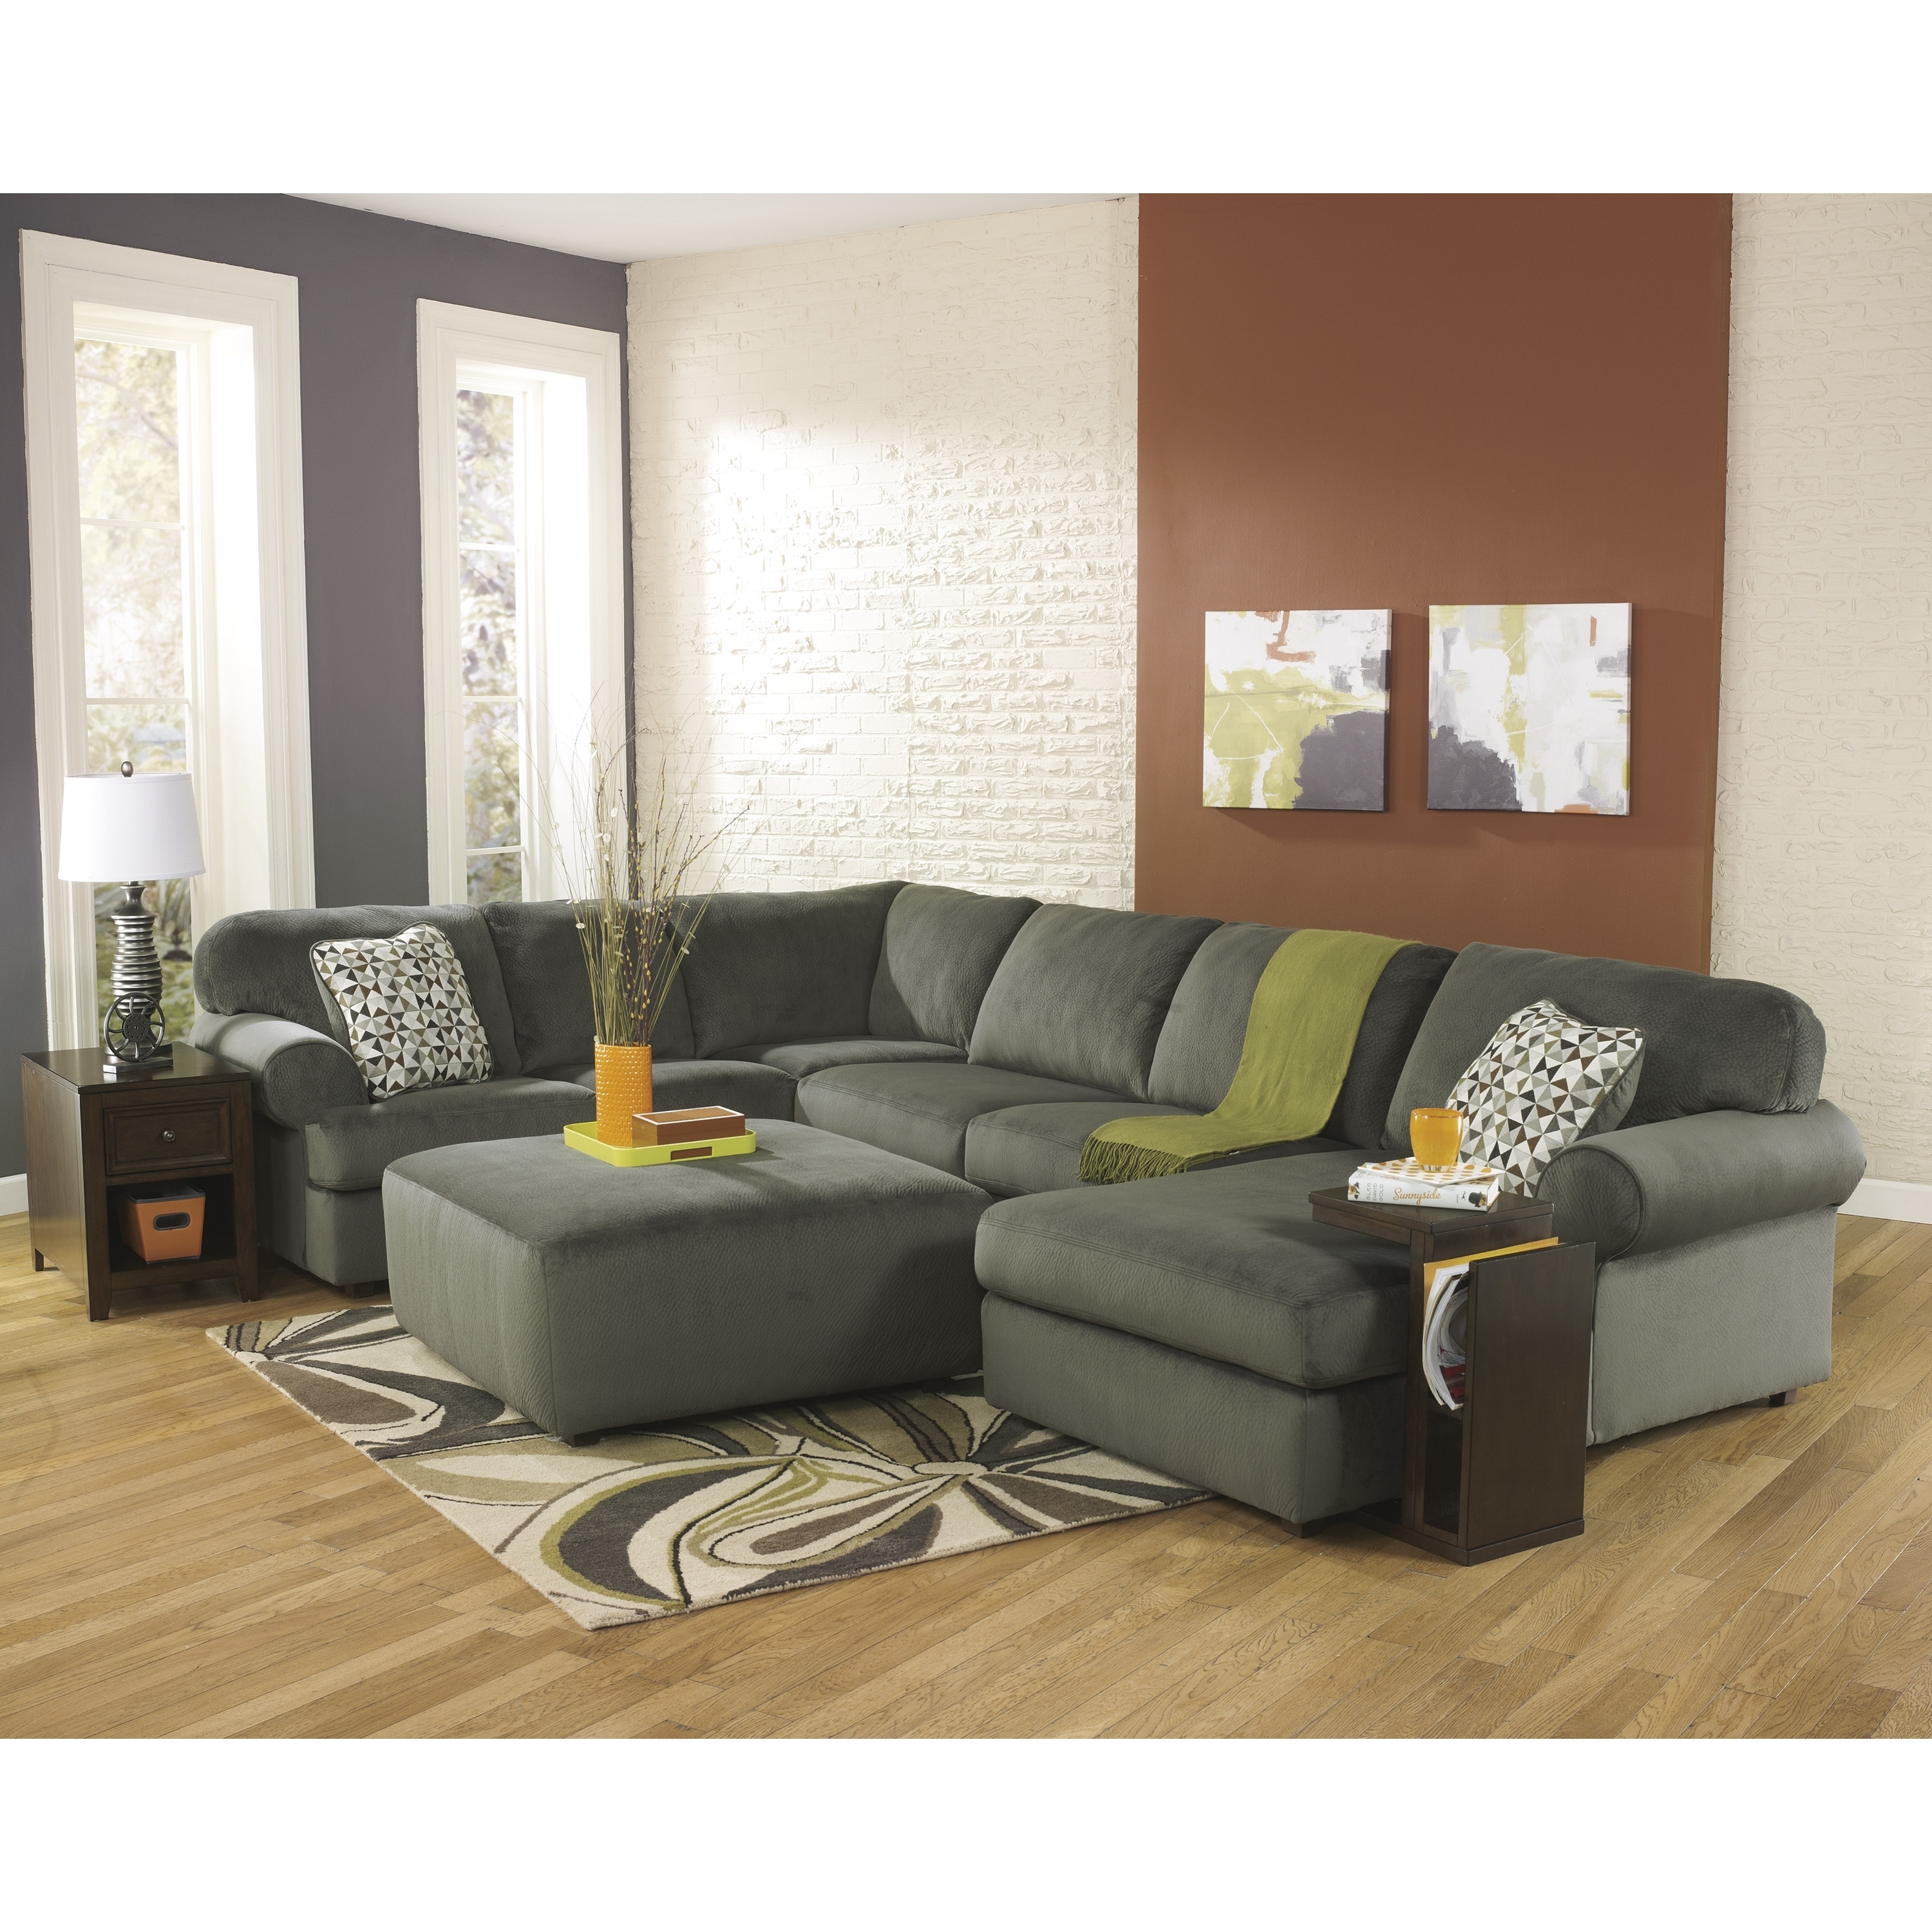 Sears Sectional Sleeper Sofa • Sectional Sofa Throughout Sears Sectional Sofas (View 3 of 10)